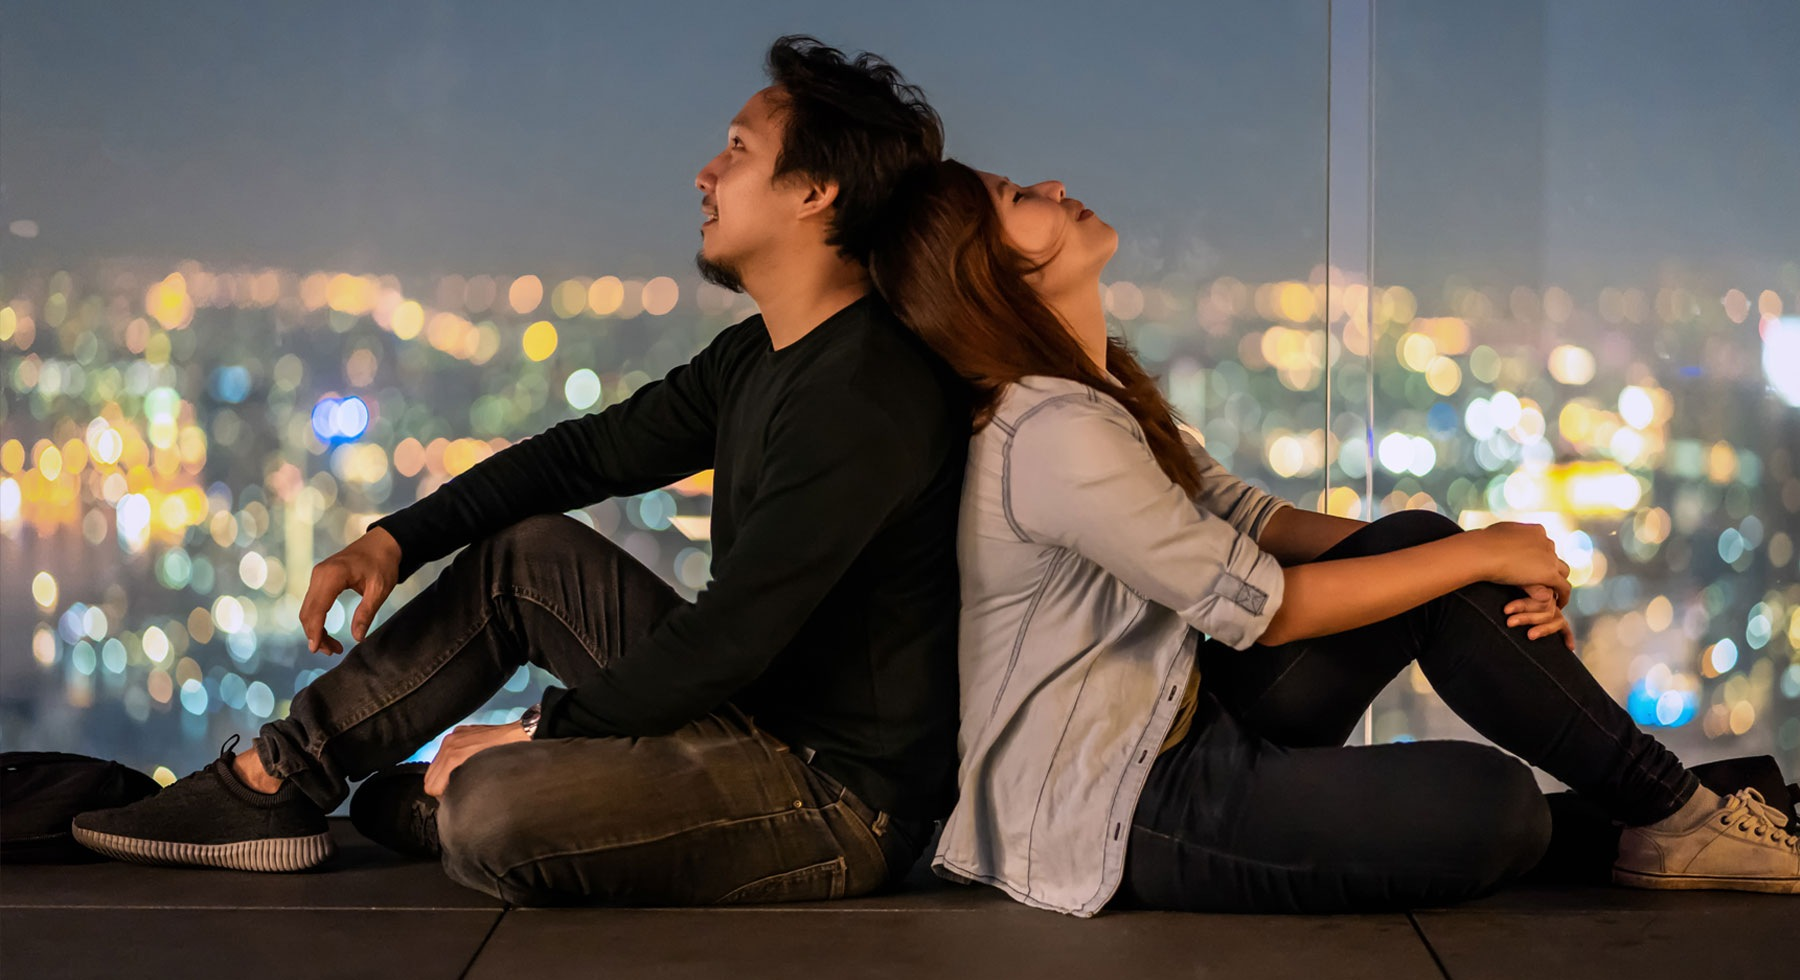 lifestyle image of a couple sitting against each other with the lights of a city in the view